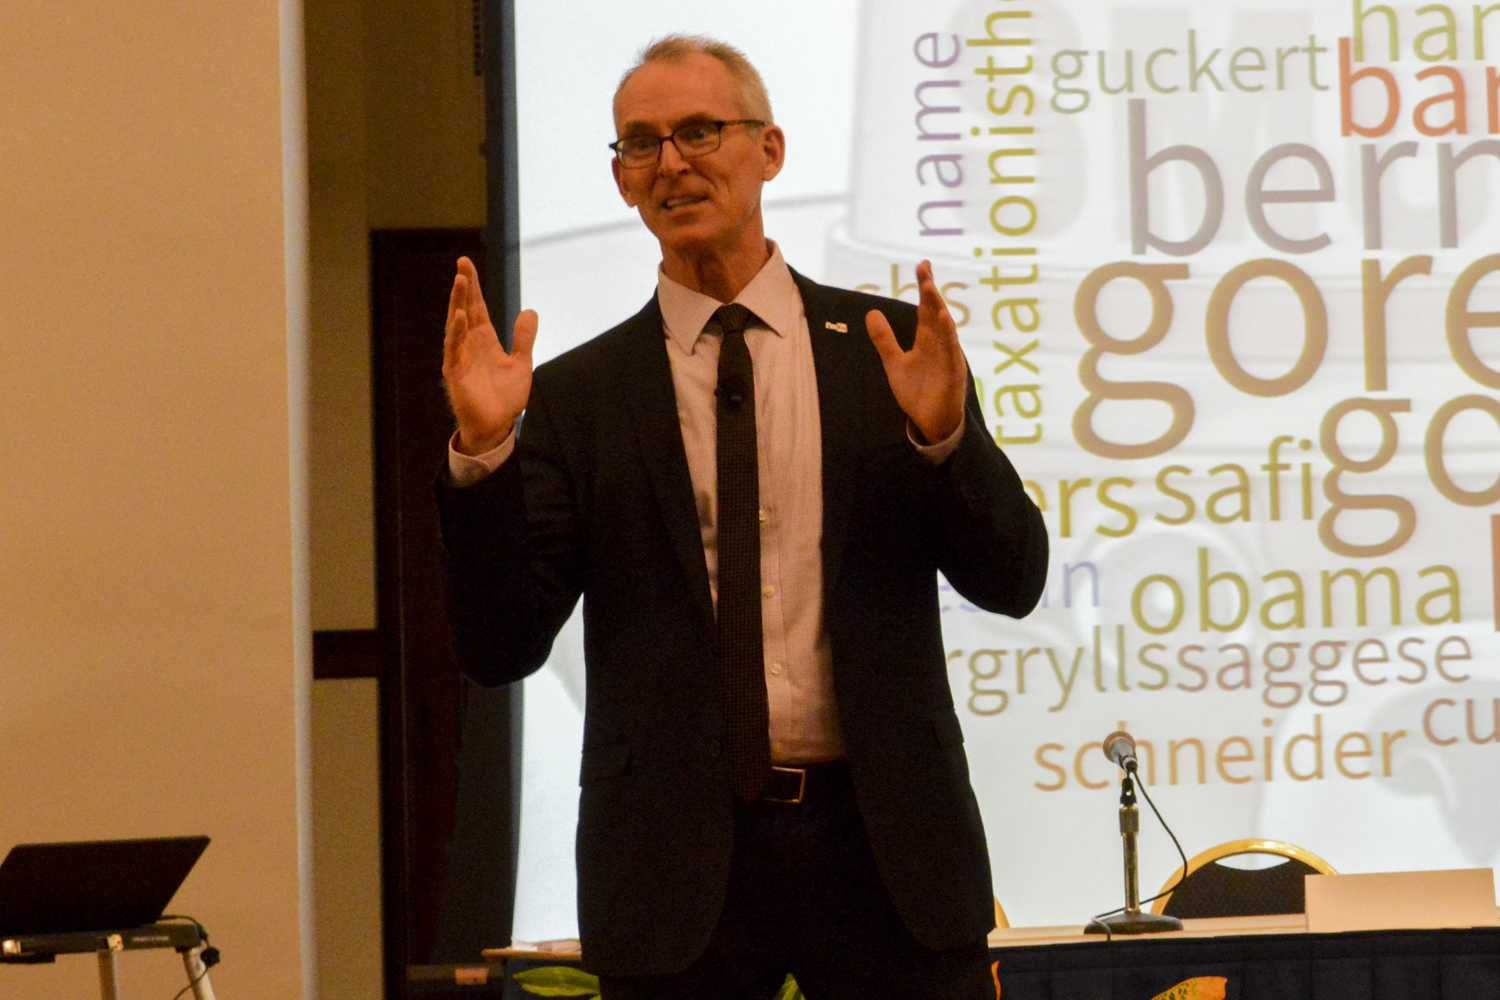 Bob Inglis, a former U.S. Representative and Executive Director of republicEn, co-led a presentation on social and political polarization. (Photo by Issi Glatts | Staff Photographer)